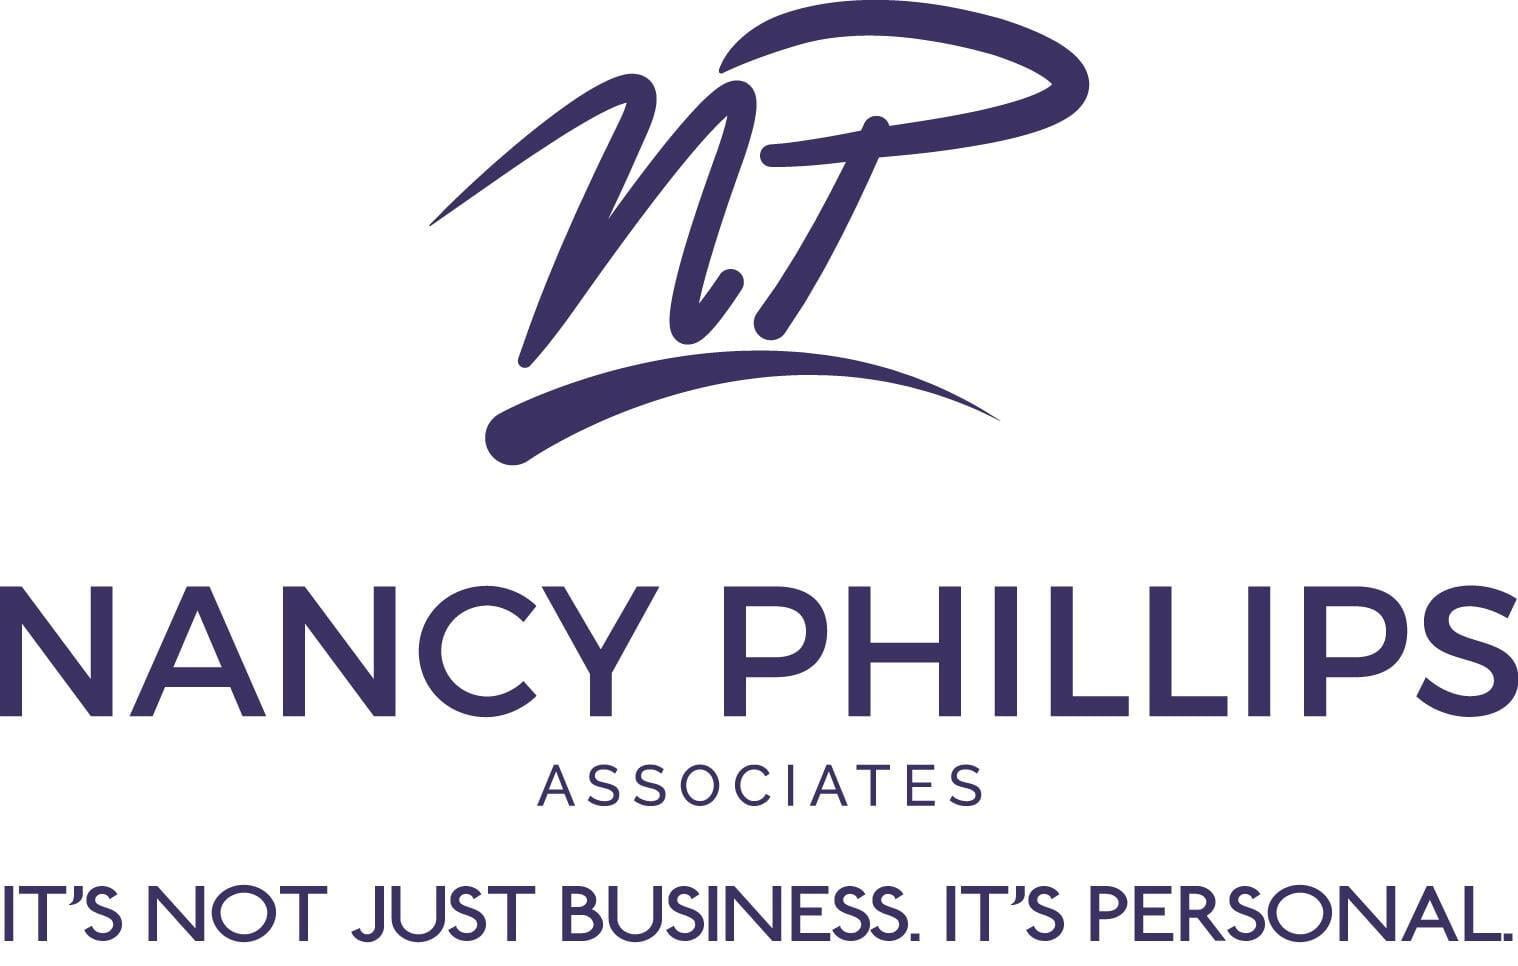 Nancy Phillips Associates